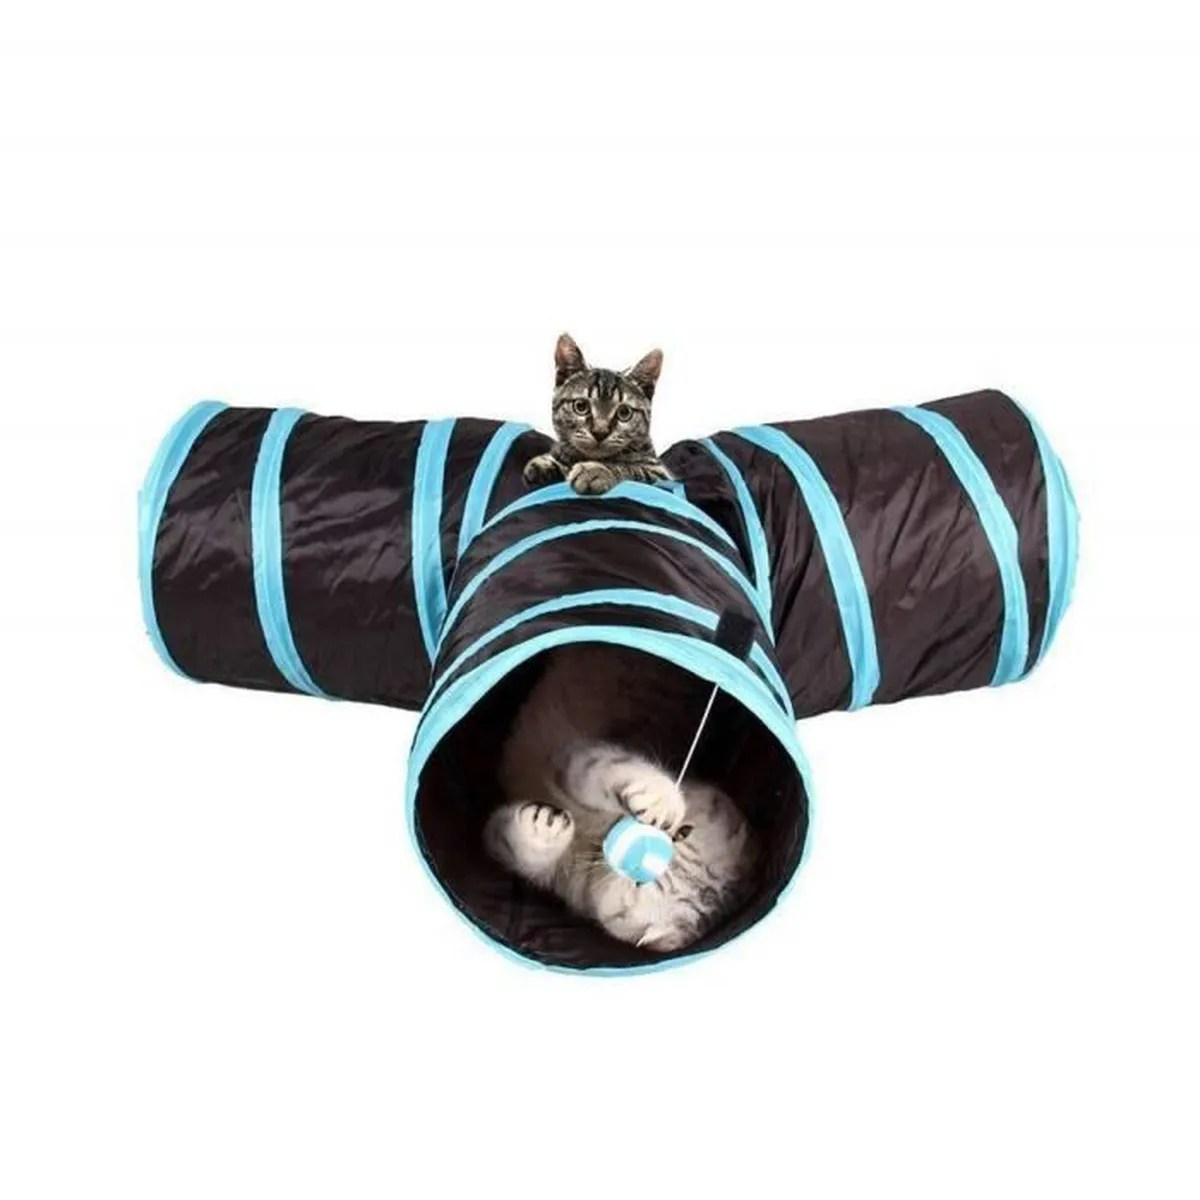 Tunnel Pour Animaux Jouet Pour Chat Chaton Chat Jouer Jeux Pour Chat Chat Tunnel